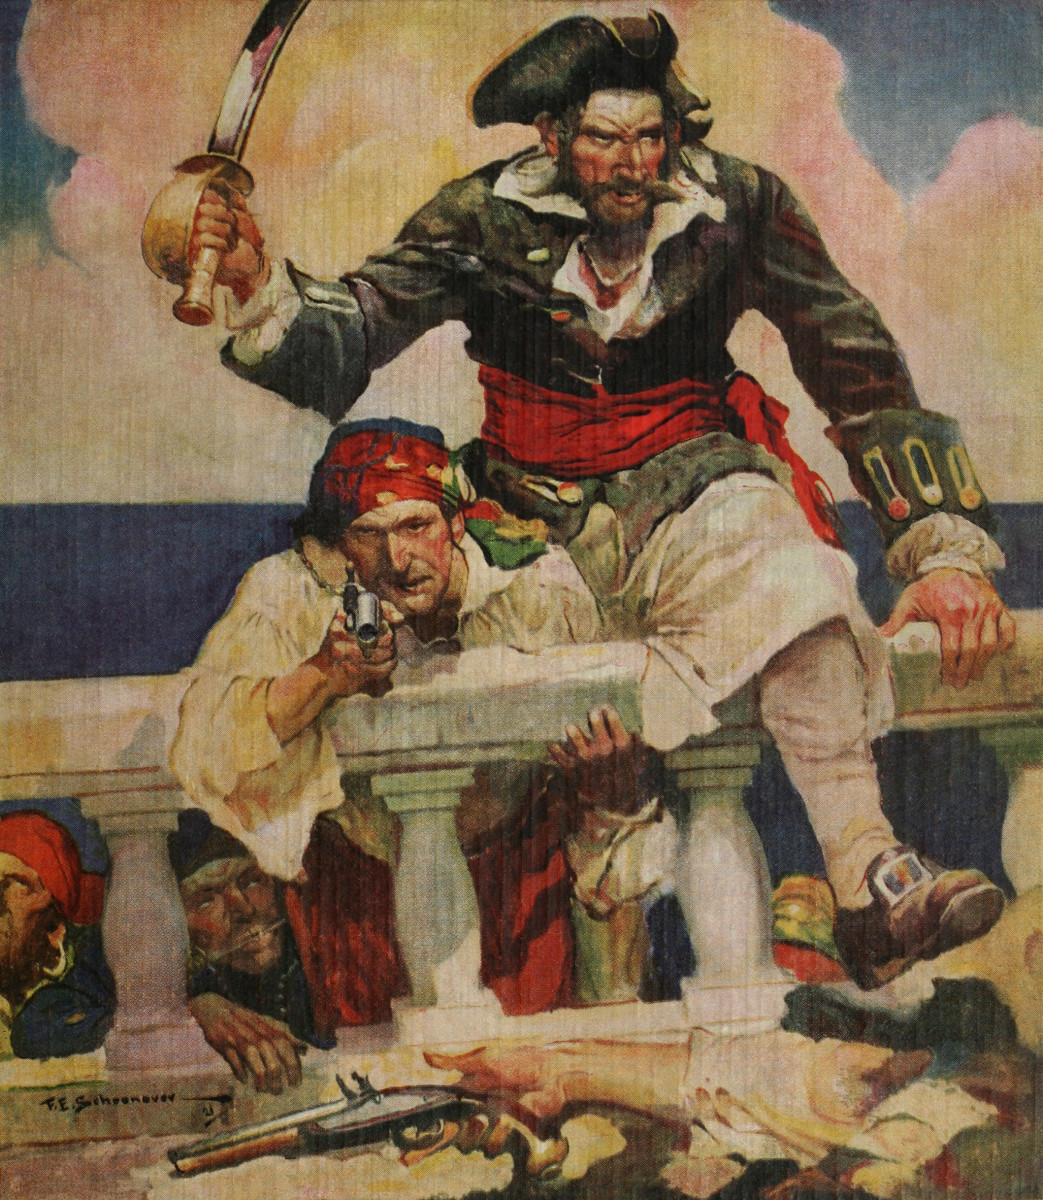 Edward Thatch, more commonly known as Blackbeard, was one of the most ruthless pirates that ever was.